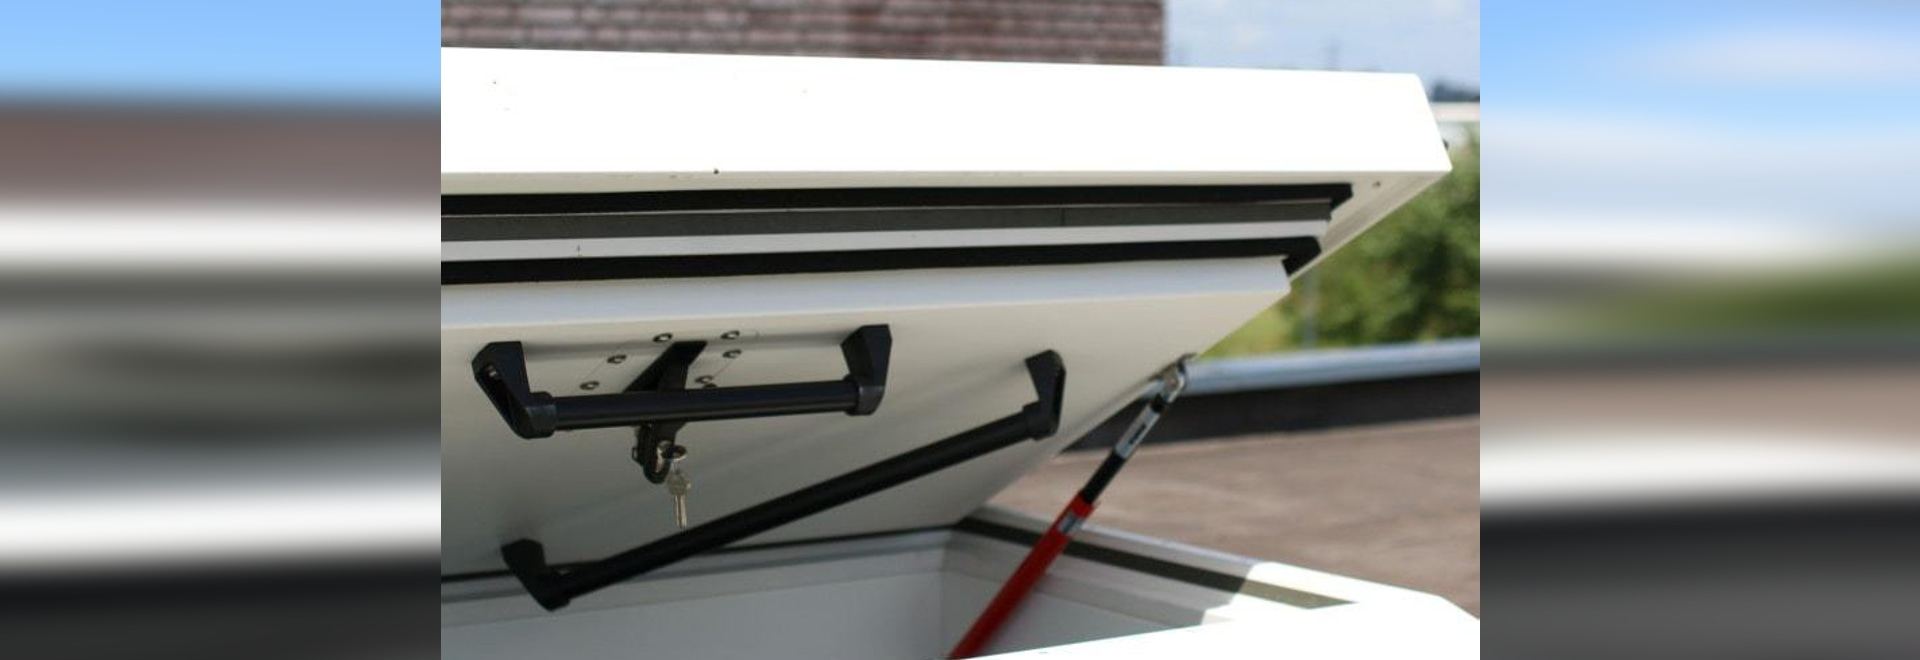 Why a roof hatch for roof access?